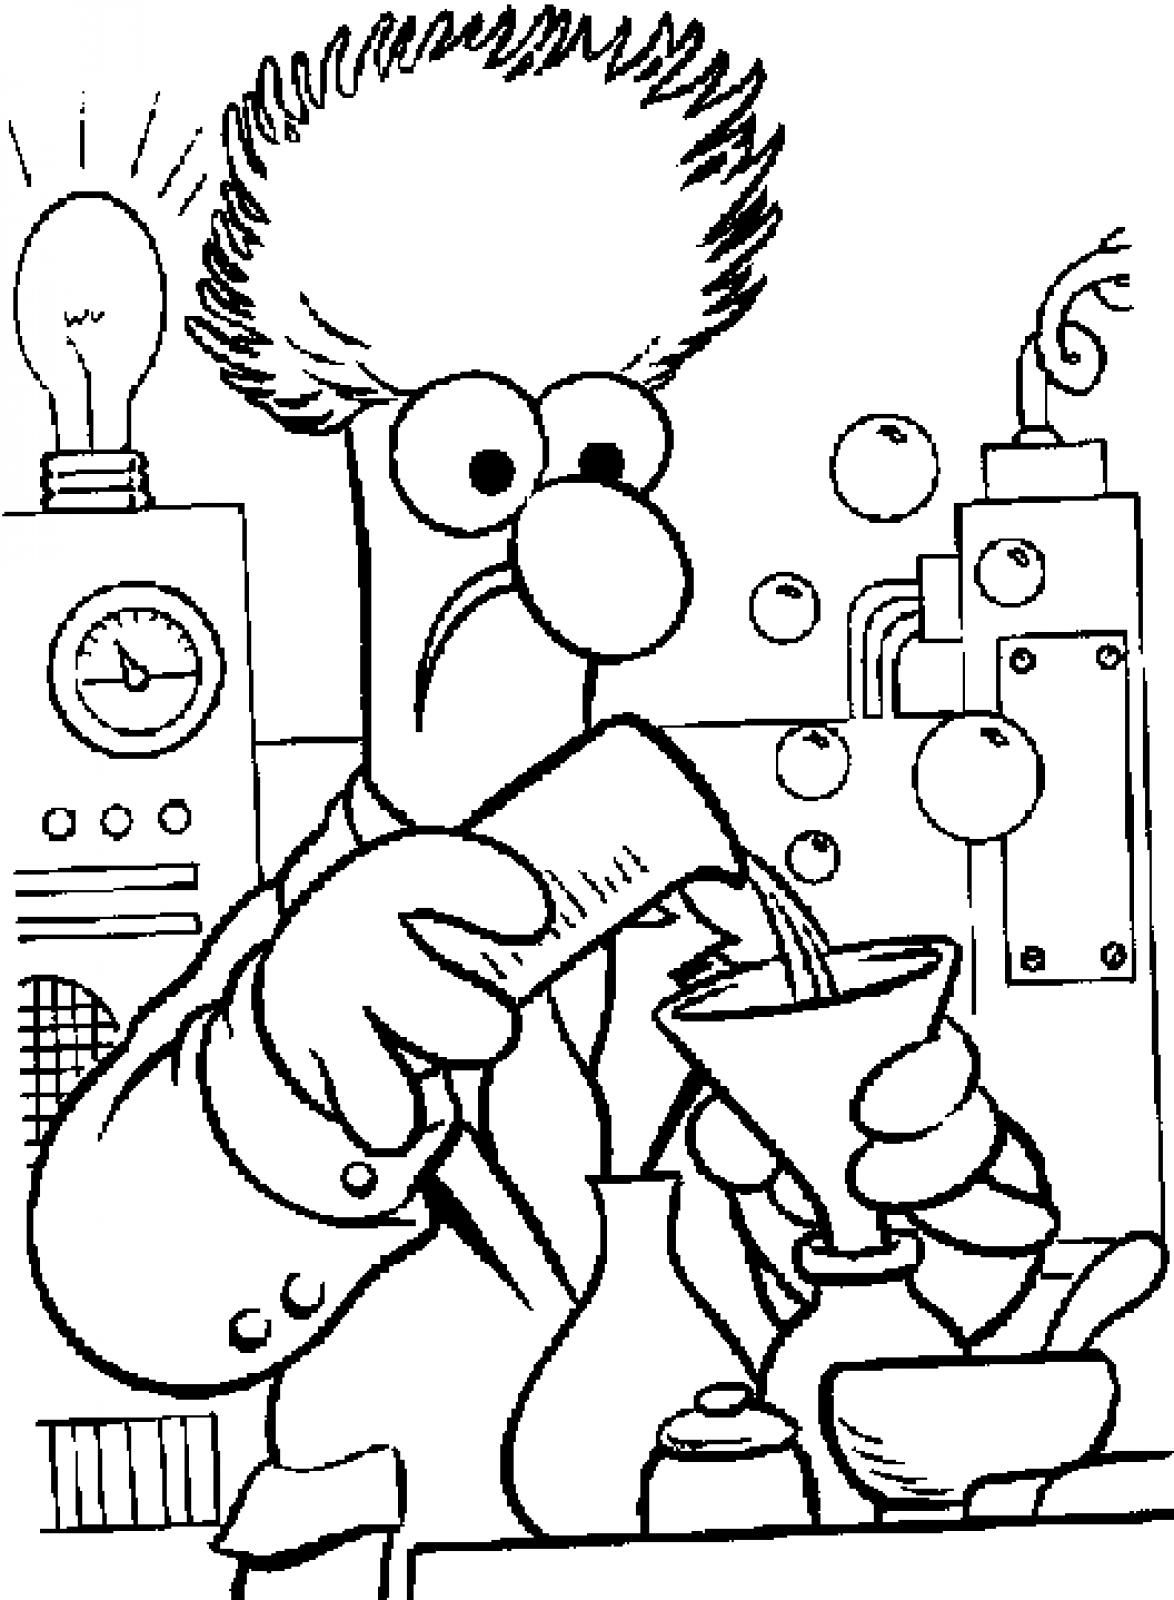 Muppets Chemistry Coloring Cartoon coloring pages, Love